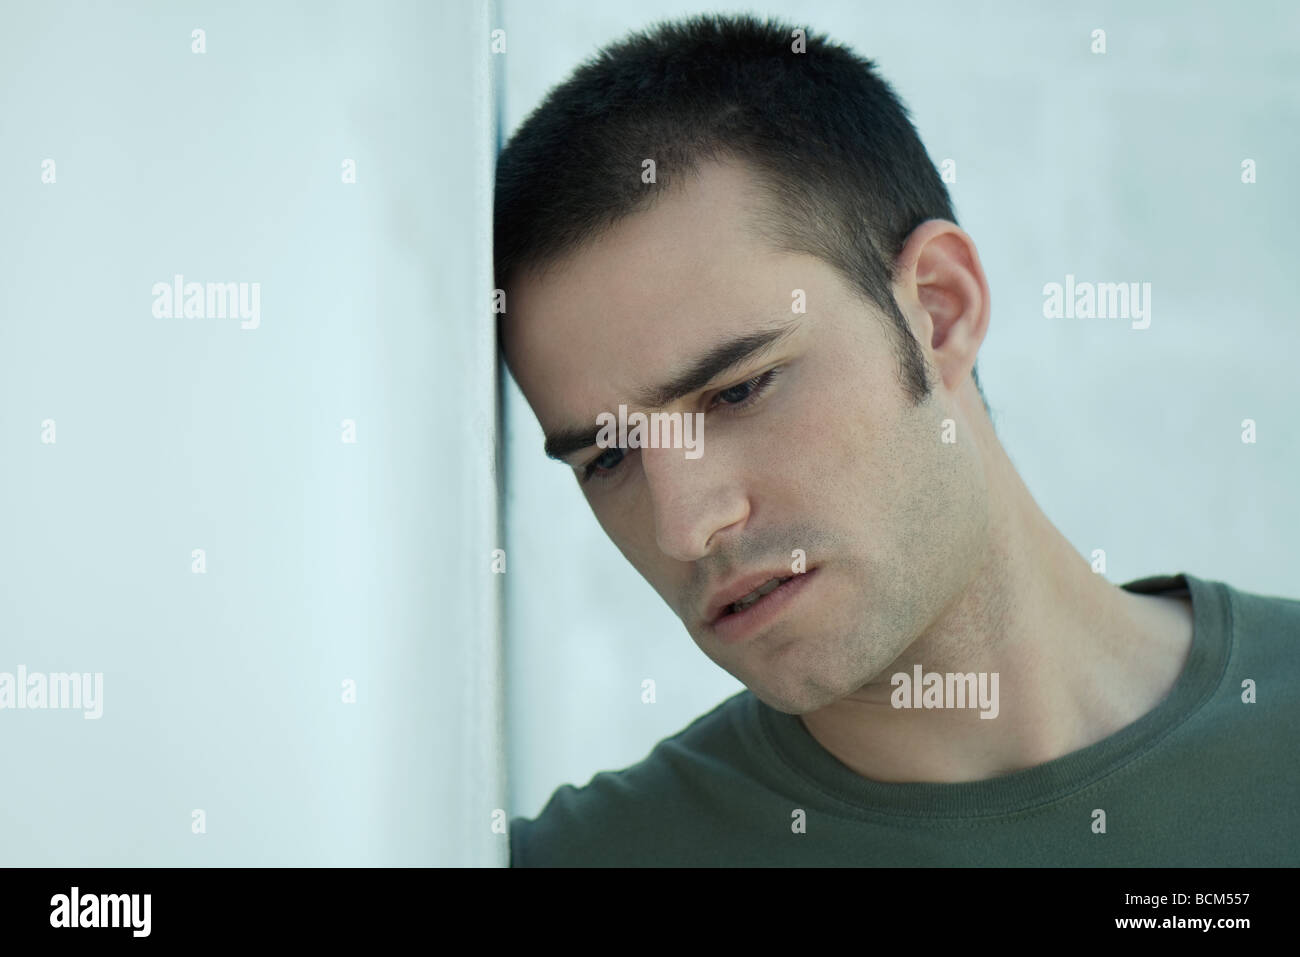 Man leaning head against wall, furrowing brow - Stock Image